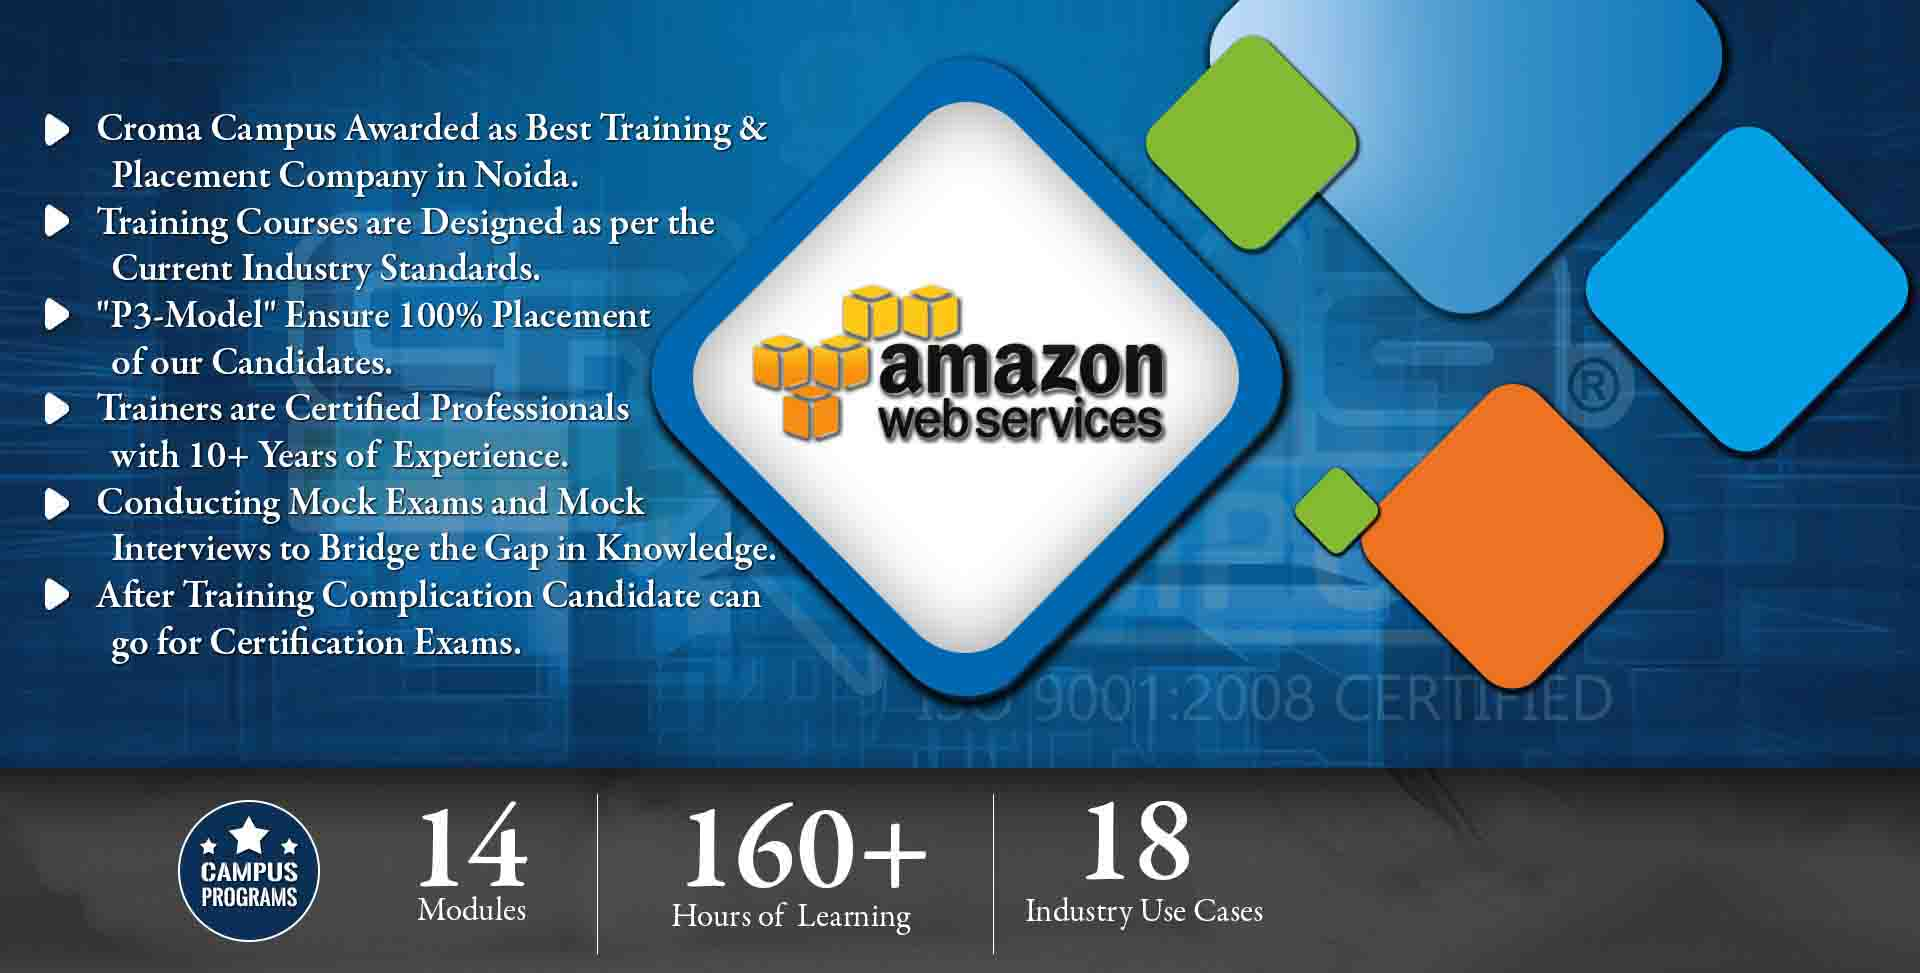 Amazon Web Services (AWS) Training in Gurgaon- Croma Campus